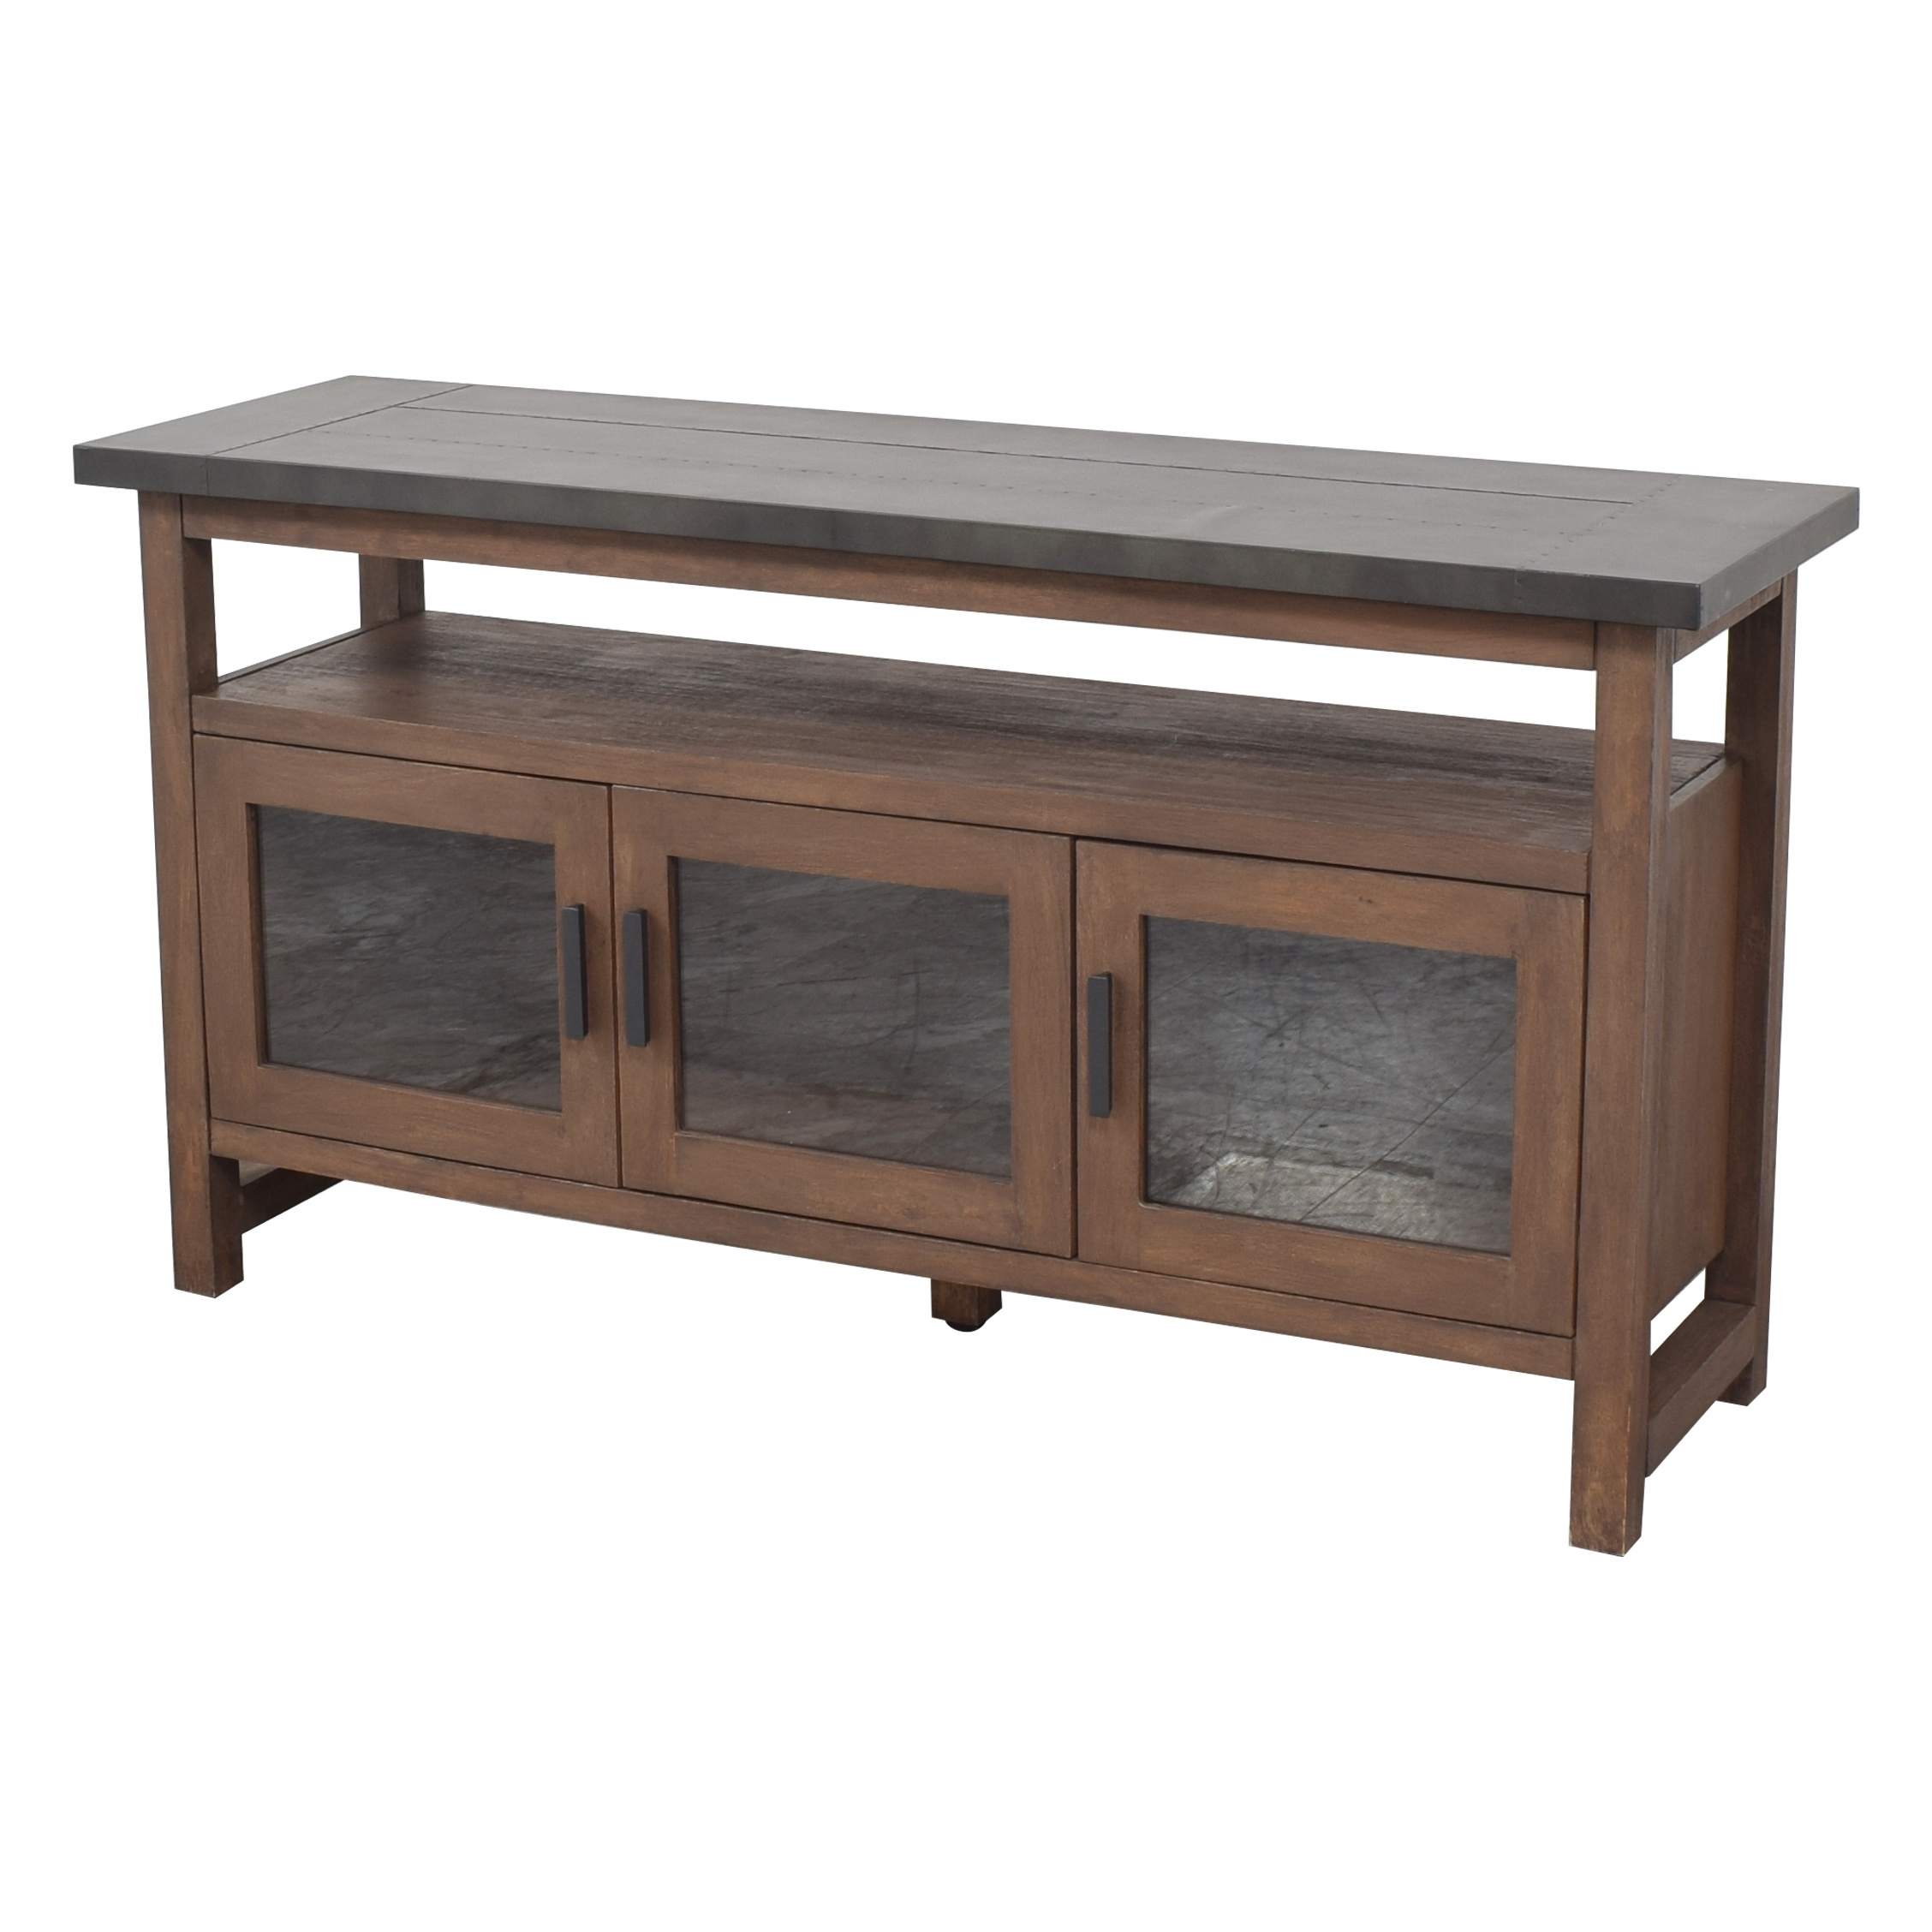 Crate & Barrel Crate & Barrel Galvin Sideboard Storage